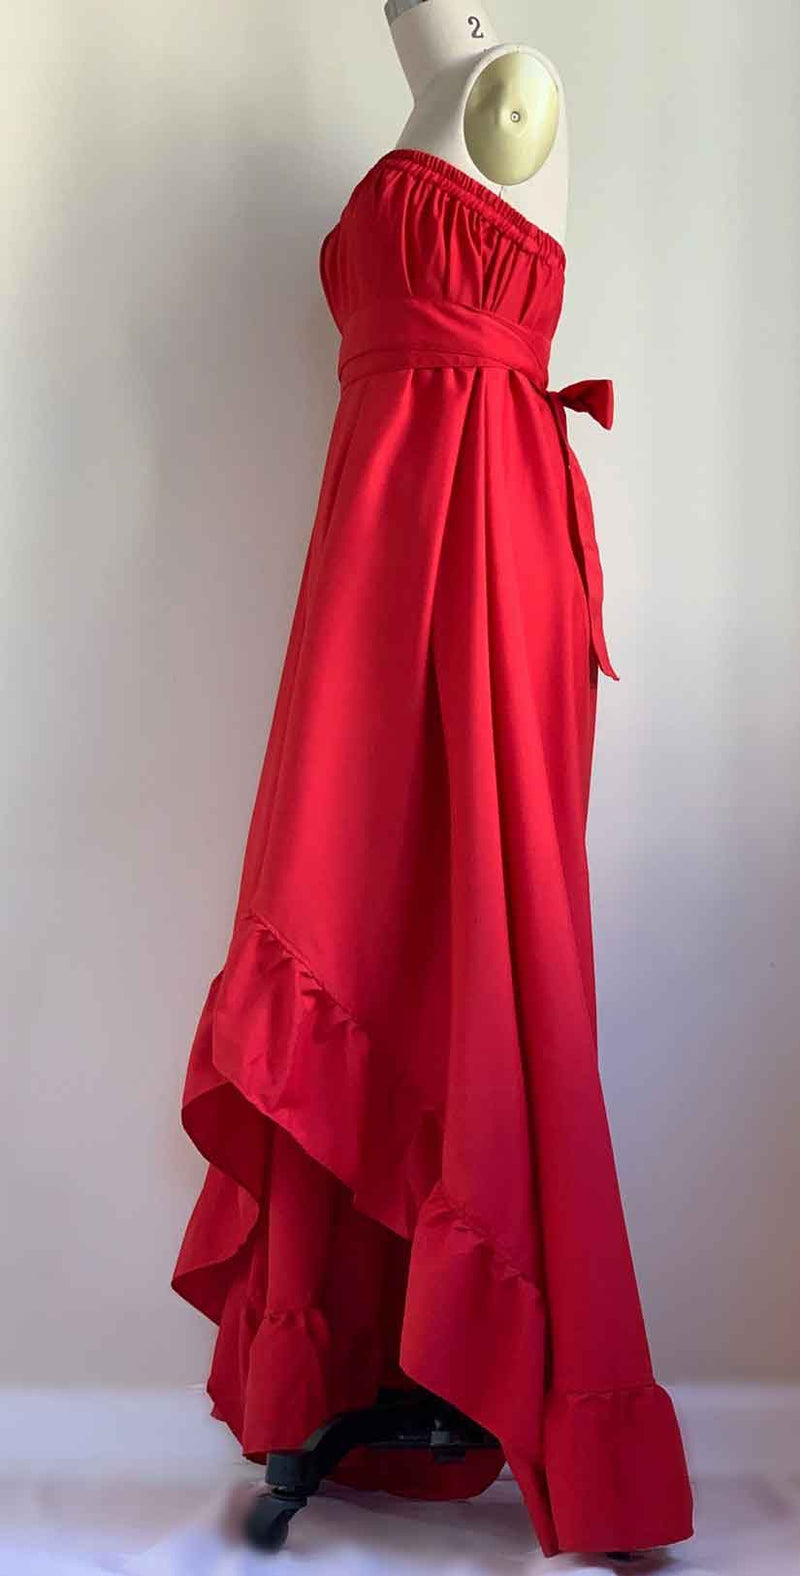 Camaroha Sutra Goddess Dress 5 Inch Ruffle in Red Hot side